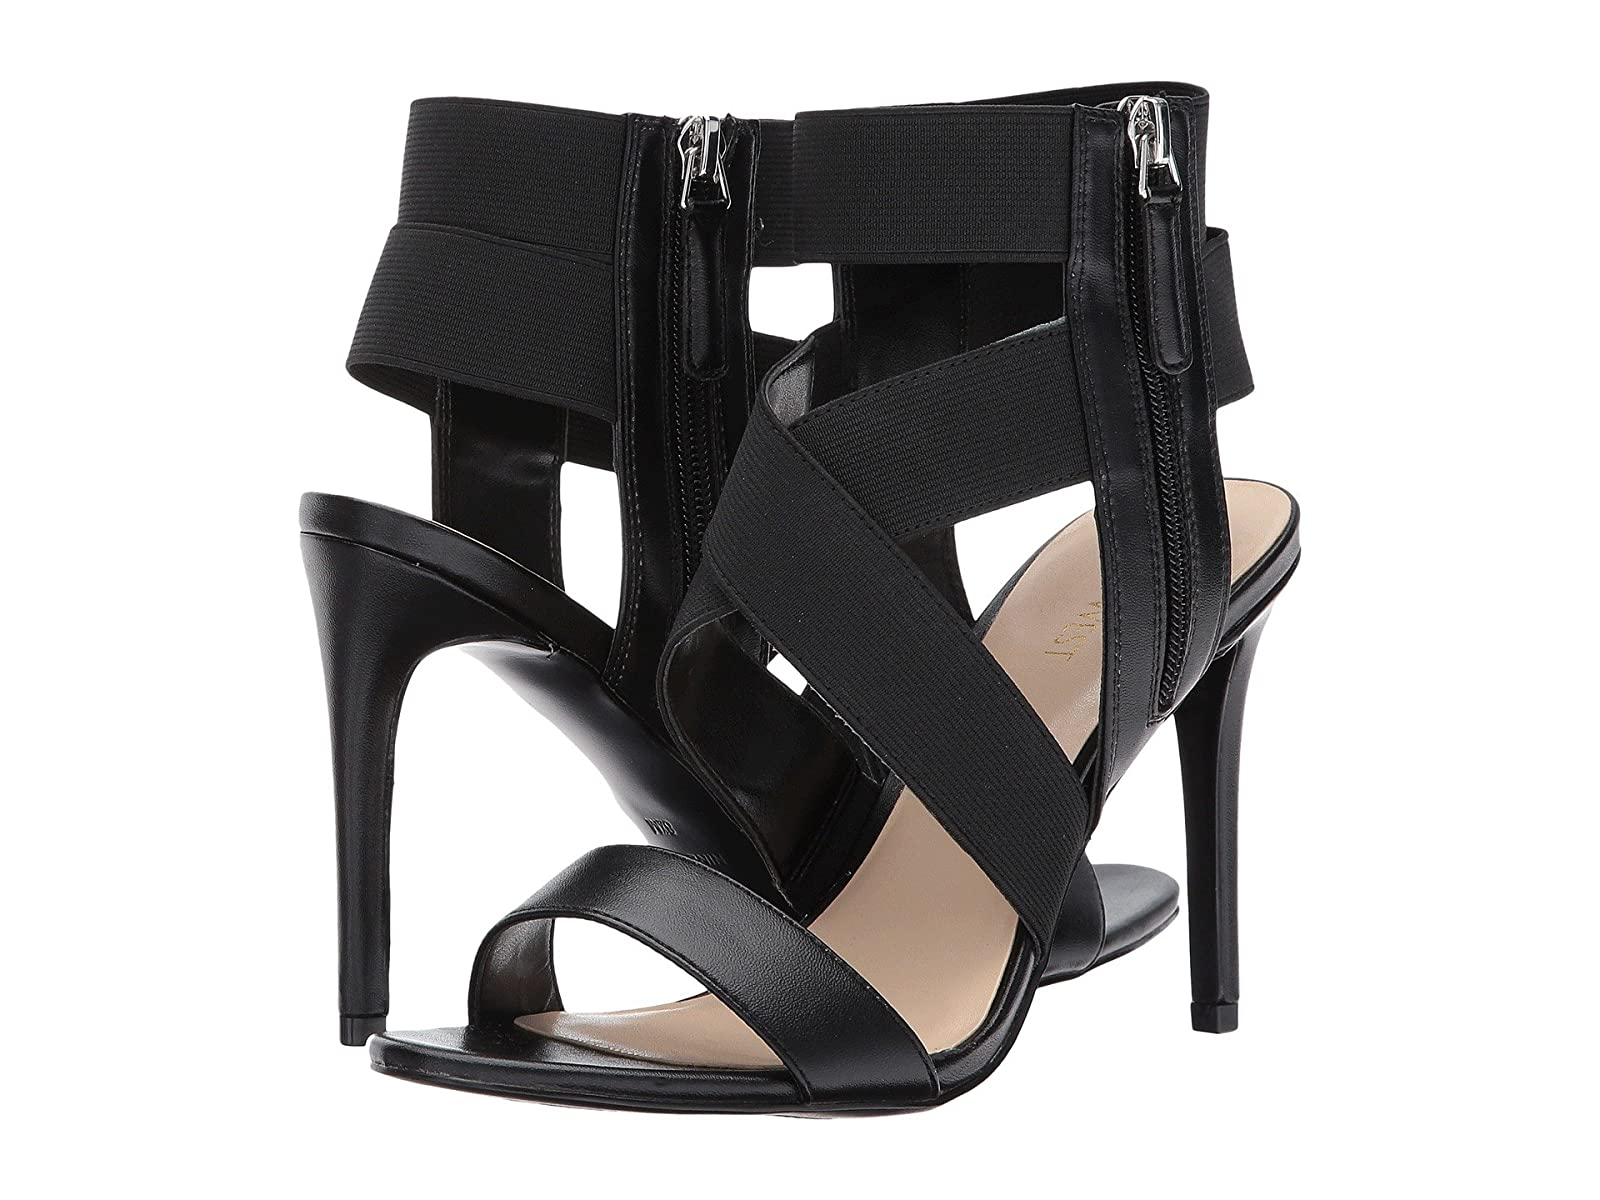 Nine West JacknetCheap and distinctive eye-catching shoes